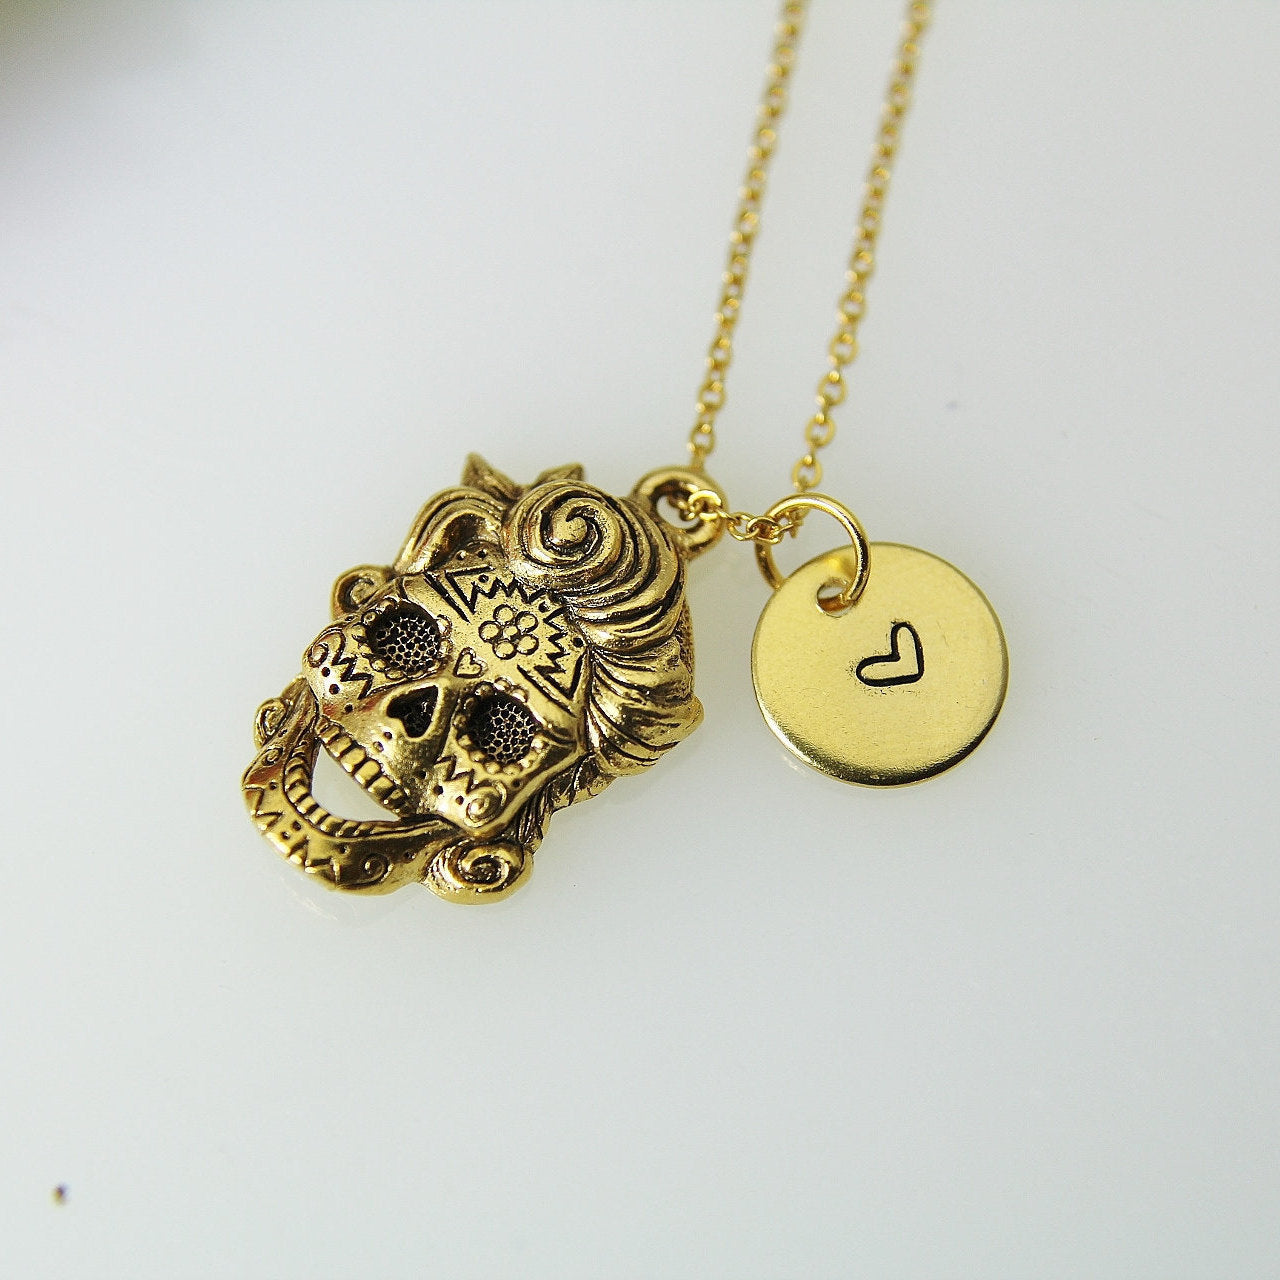 Skull Necklace, Gold Skull With Curly Hair Charm, Sugar Skull Charm, Skull Charm, Halloween Gift, Halloween Jewelry Personalized Gift N431